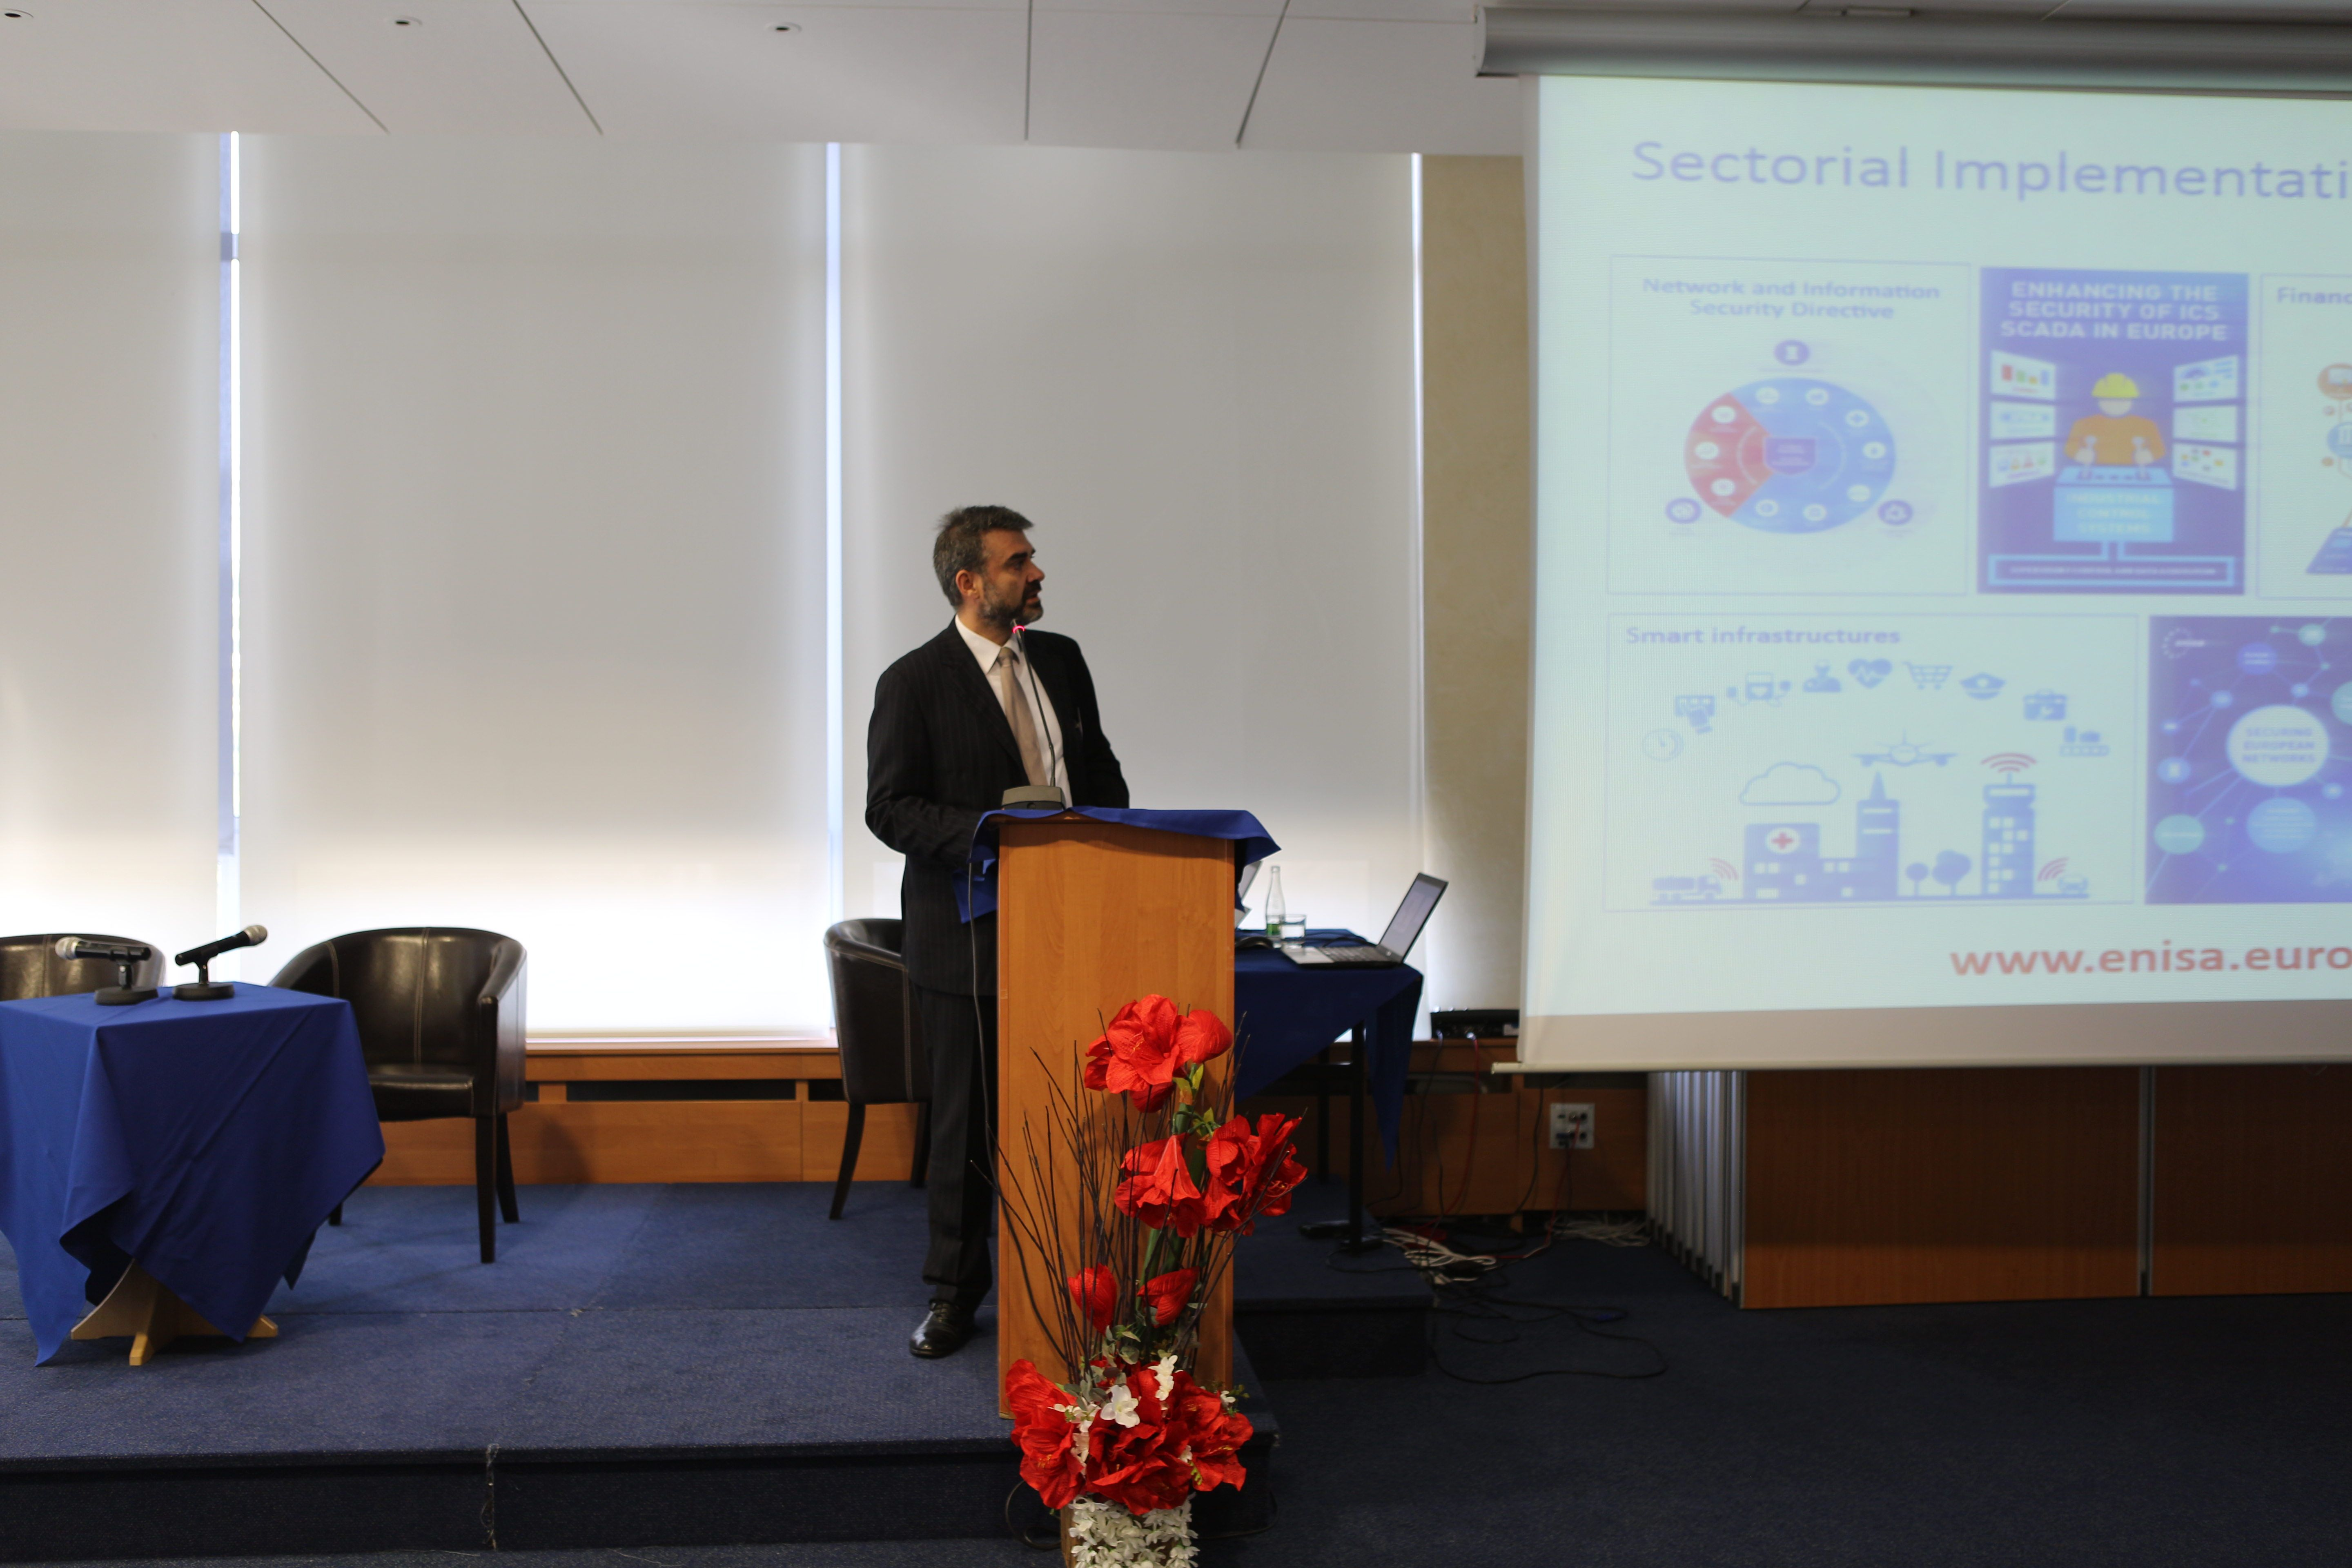 This second event organised by both the National Security Authority (NSA) and European Network and Information Security Agency (ENISA) took place on November 30th 2018 in Bratislava. During the workshop it was again approved that constructive dialogue on the needs and experience in application of the NIS Directive and the protection of critical infrastructure among...